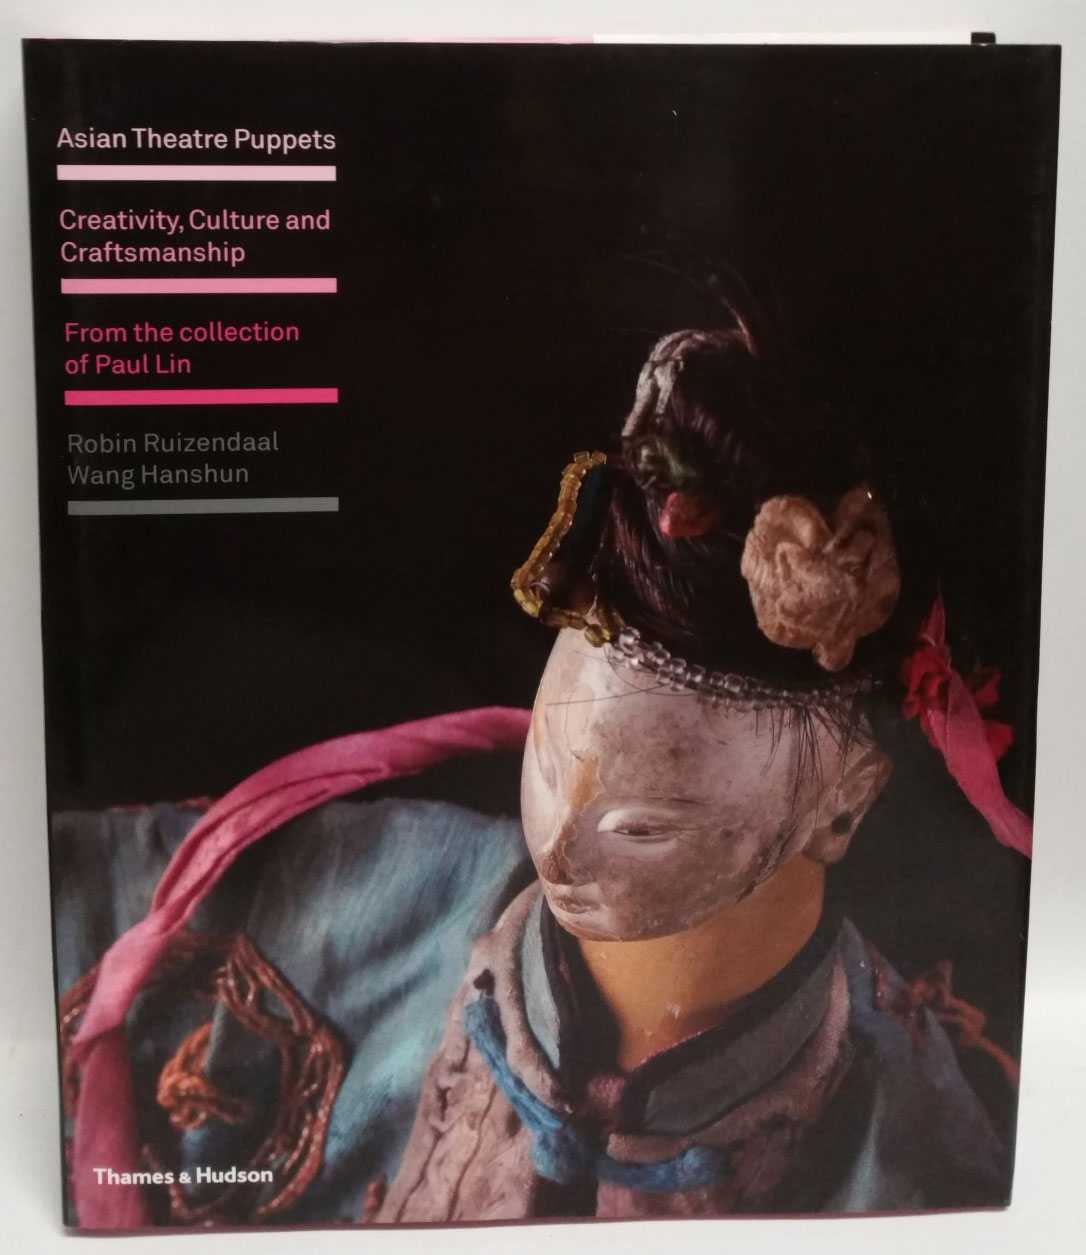 Asian Theatre Puppets: Creativity, Culture and Craftsmanship: From the collection of Paul Lin, Robin Ruizendall; Wang Hanshun